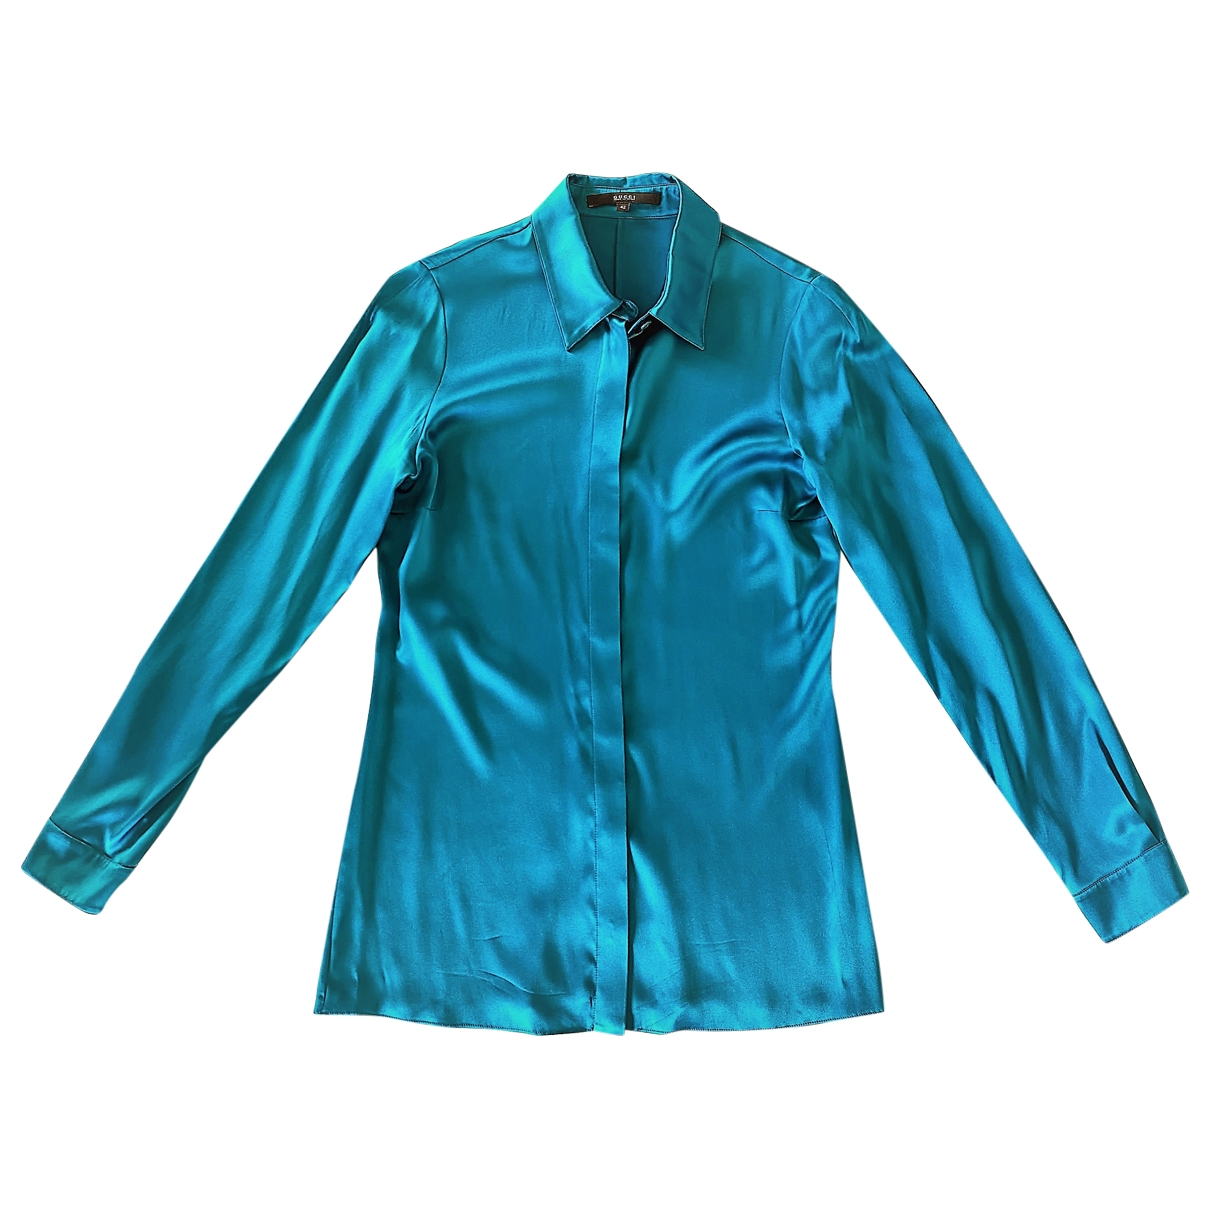 Gucci \N Turquoise Silk  top for Women 42 IT